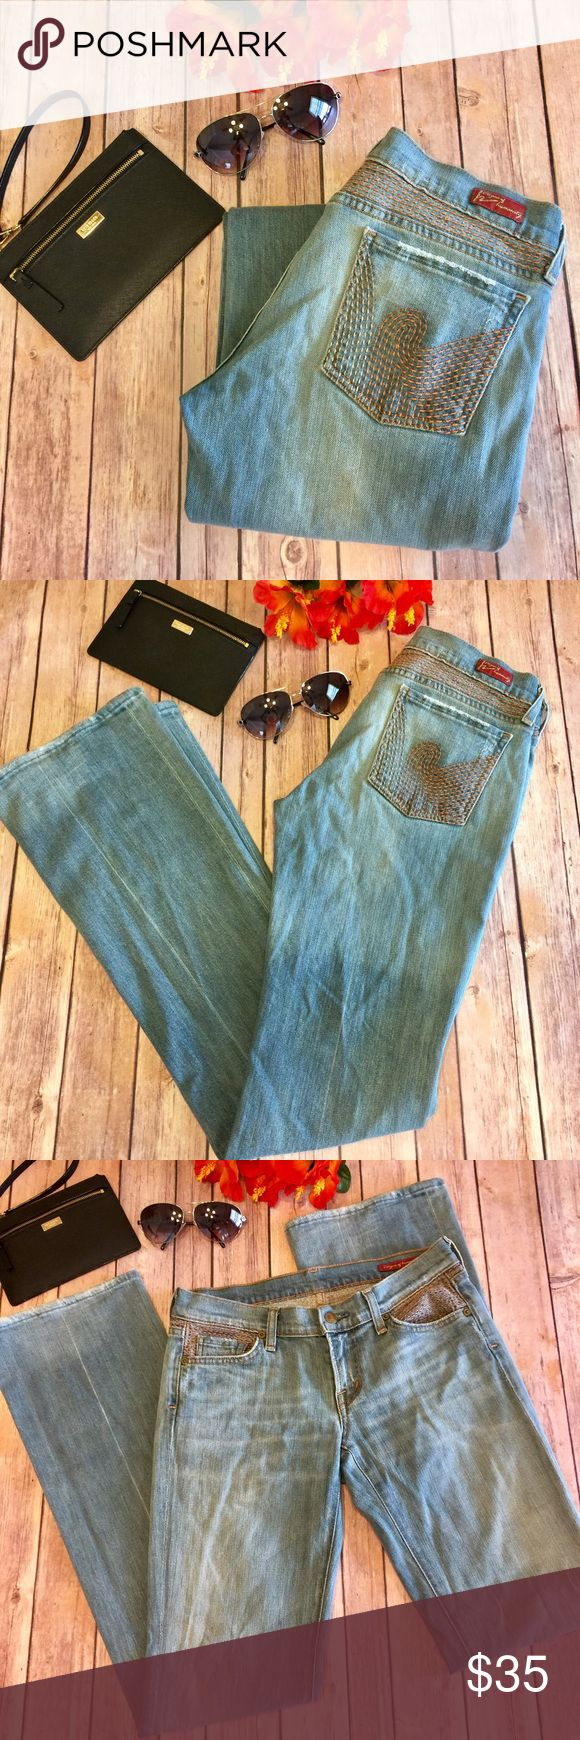 "🌴SALE🌴 Citizens Of Humanity Bootcut Light Jeans Super Cute And Stylish!!! Distressed Bootcut Citizens Of Humanity Jeans. Approx 34"" Inseam. Waist Is Approx 14"" Flat... Excellent Pre Loved Condition! Citizens Of Humanity Jeans Boot Cut"